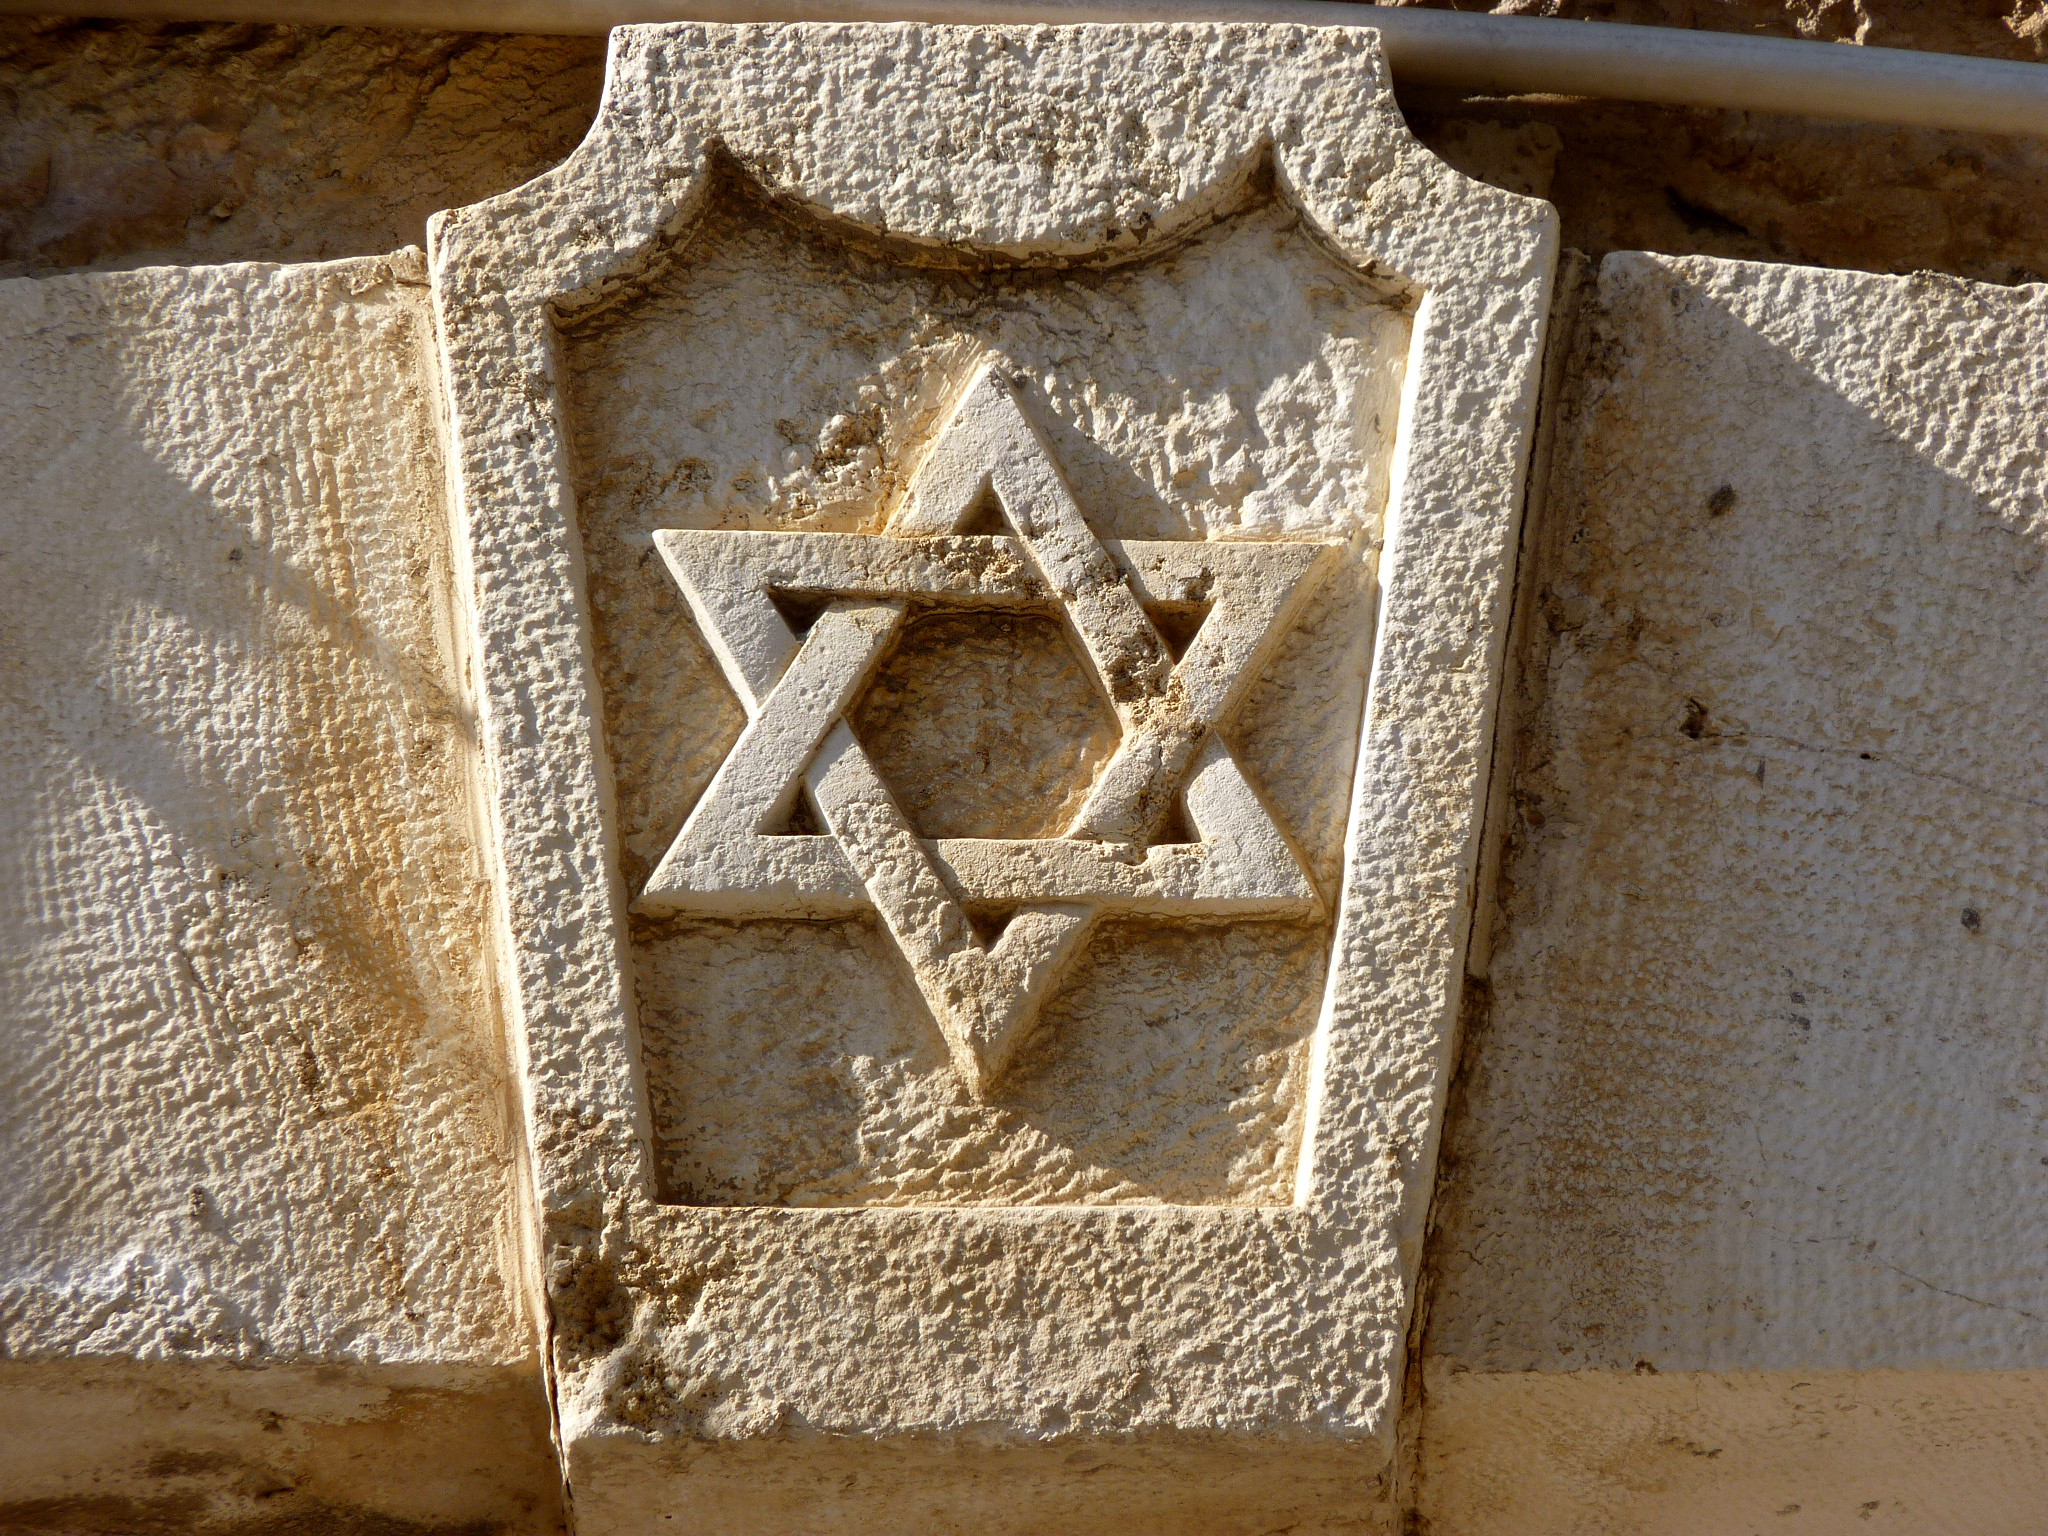 The Star of David Set in Stone